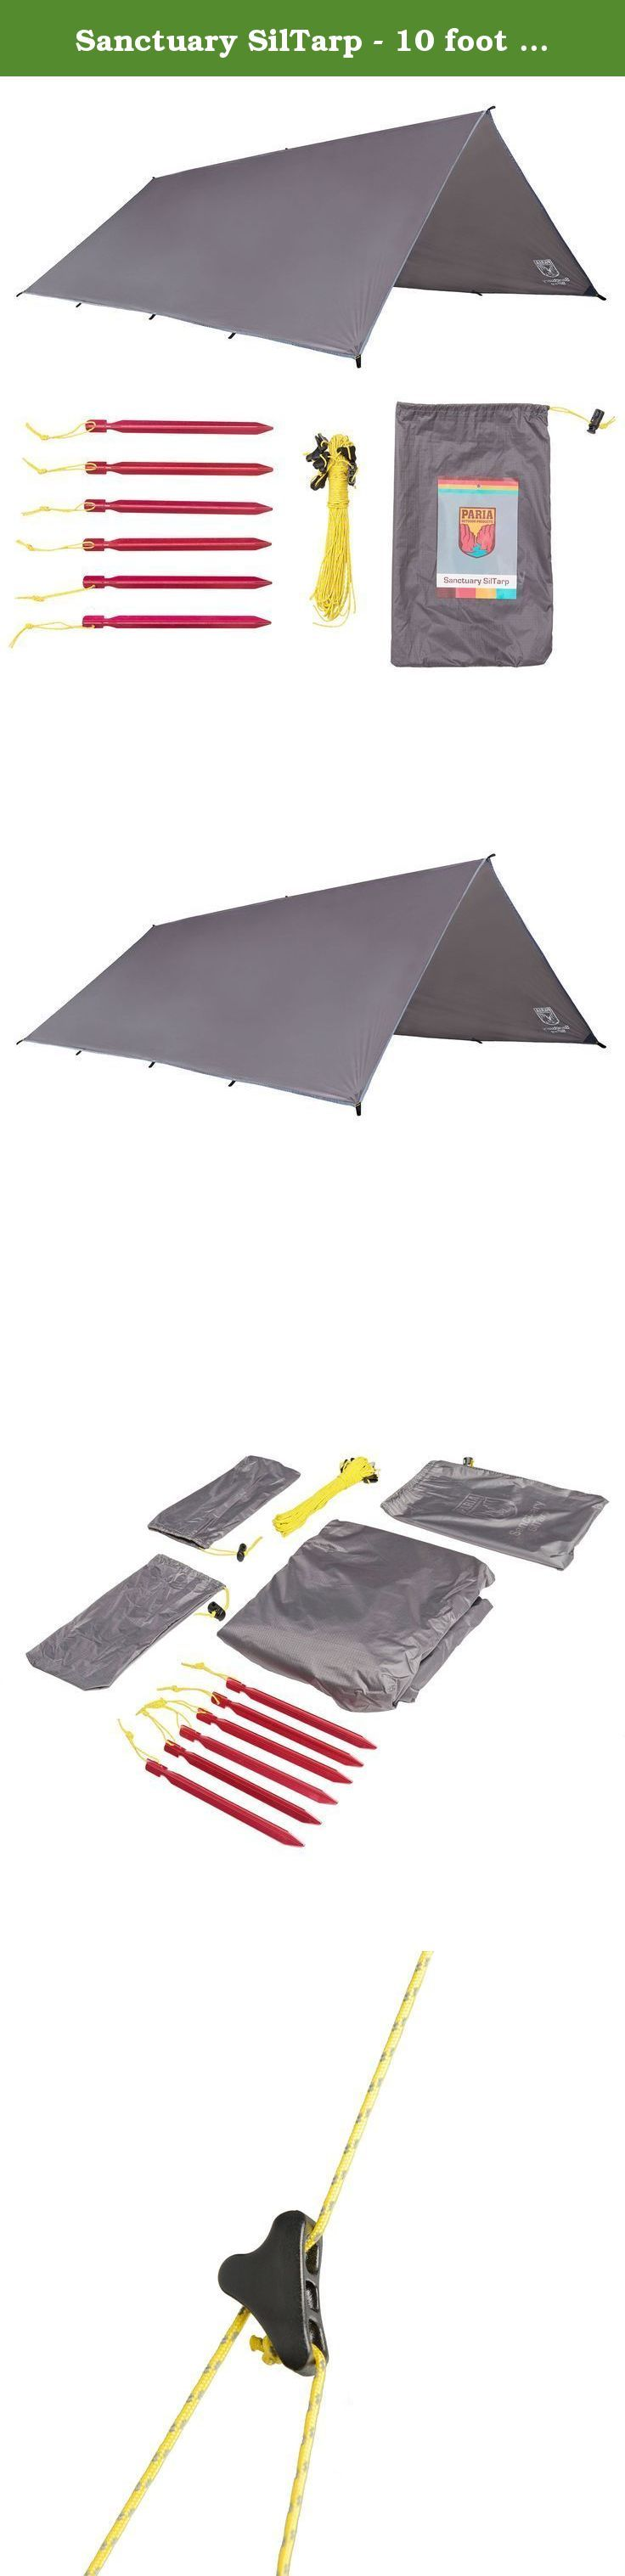 Sanctuary SilTarp - 10 foot x 8 foot Ultralight and Waterproof Rain Shelter Tarp, Guy Line and Stake Kit - Perfect for Hammocks, Camping and Backpacking. When nature doesn't play nice, fight back with the most flexible and complete tarp set up you can buy! Our Sanctuary SilTarp provides unlimited pitching options, top notch waterproofing, and high quality materials to make it the perfect lightweight shelter. A Complete Kit: Sure, there are other tarps to choose from, but do they provide...